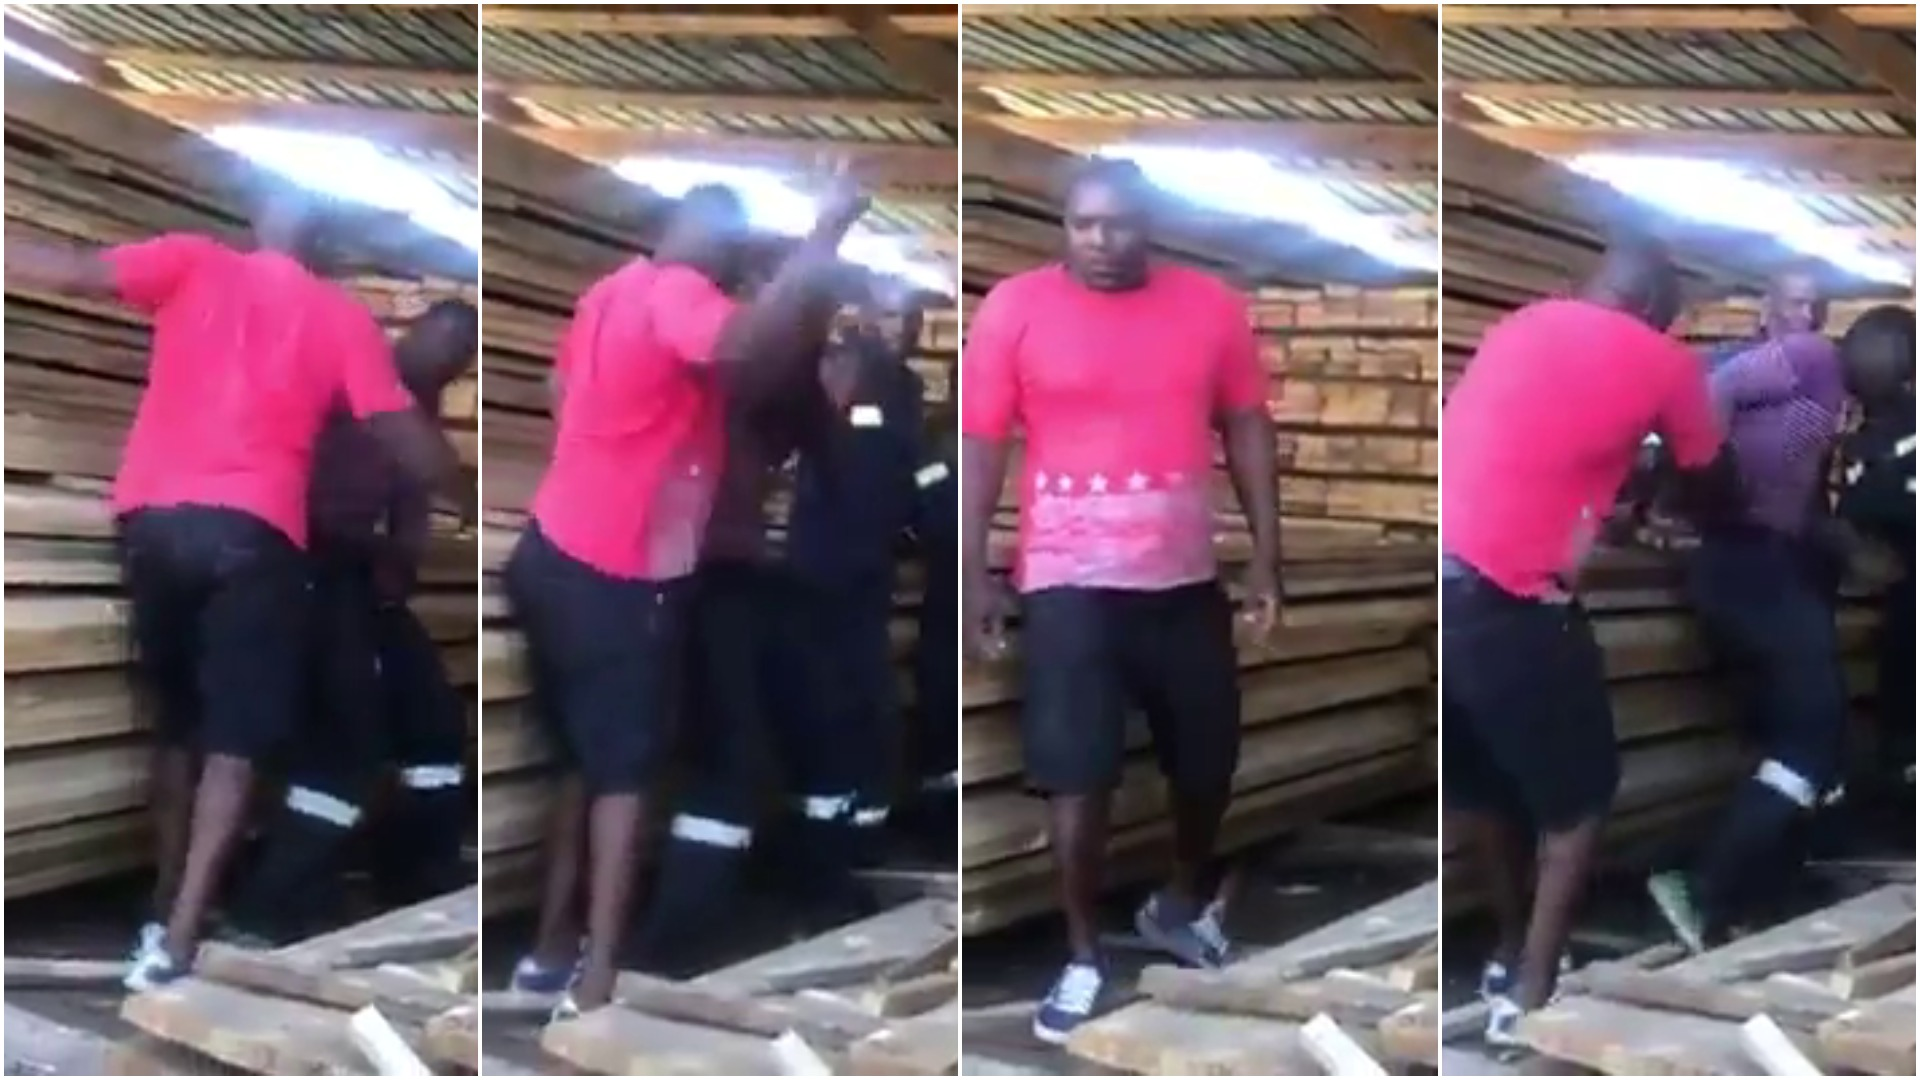 Leaked Video Of Boss Assaulting Employee Causes Outrage